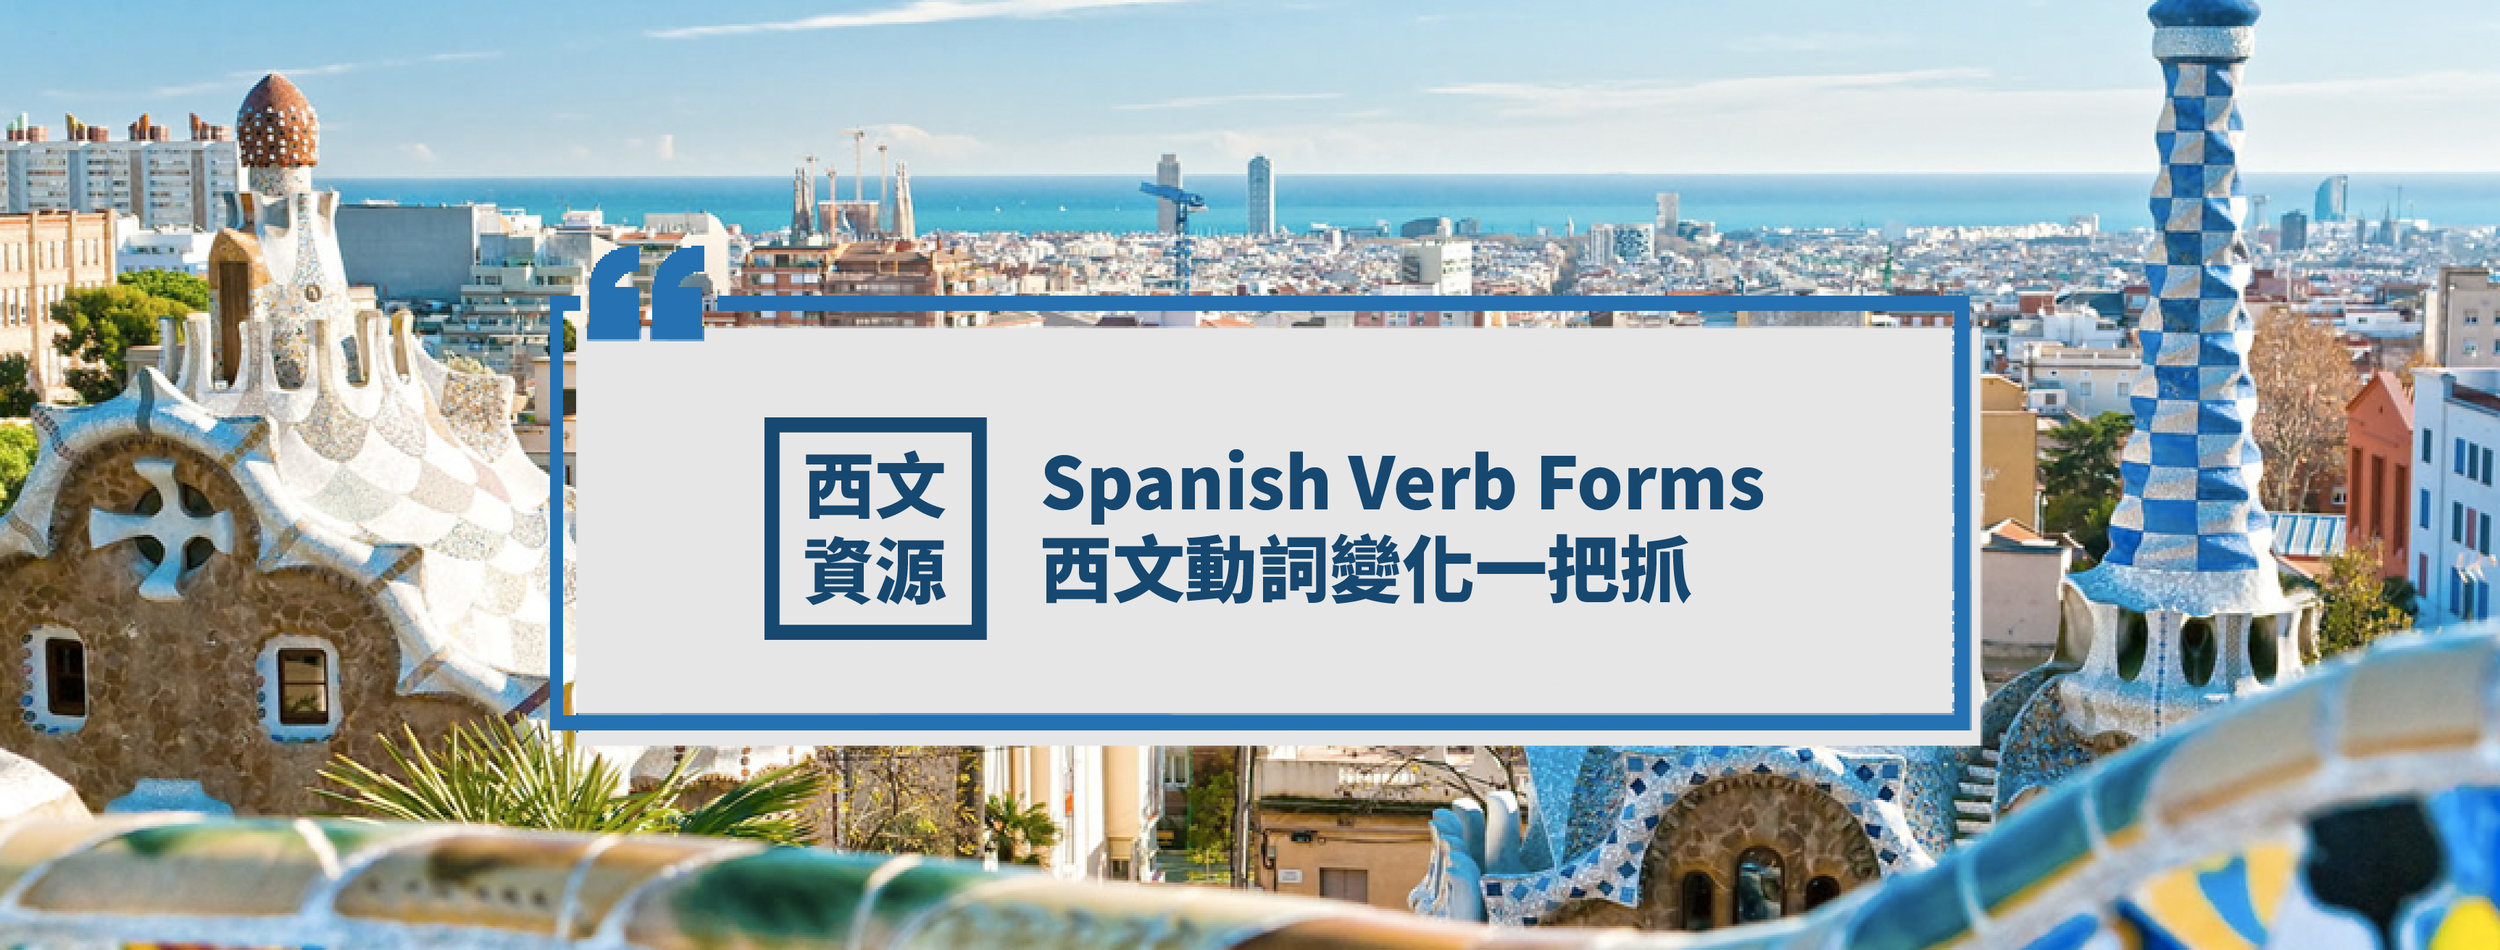 Spanish-Verb-Forms